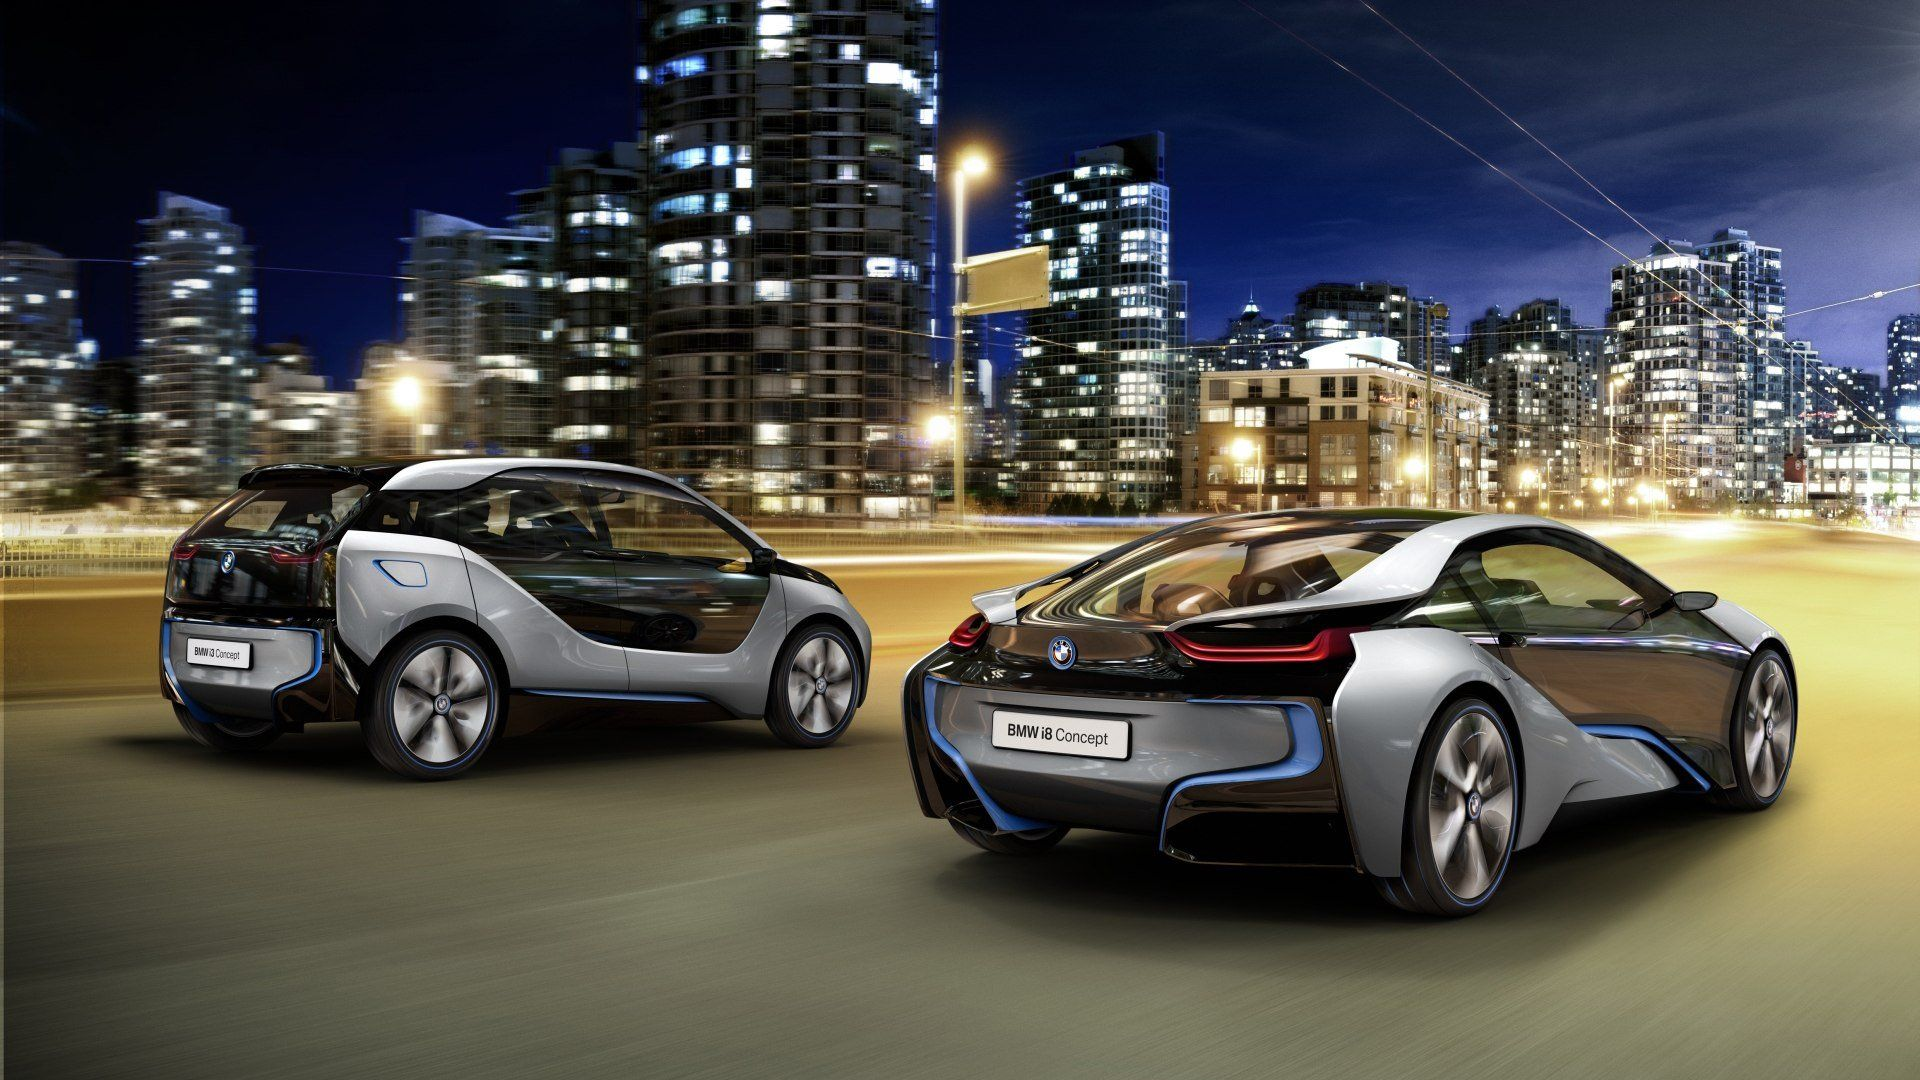 1920x1080 - BMW i3 Concept Wallpapers 37